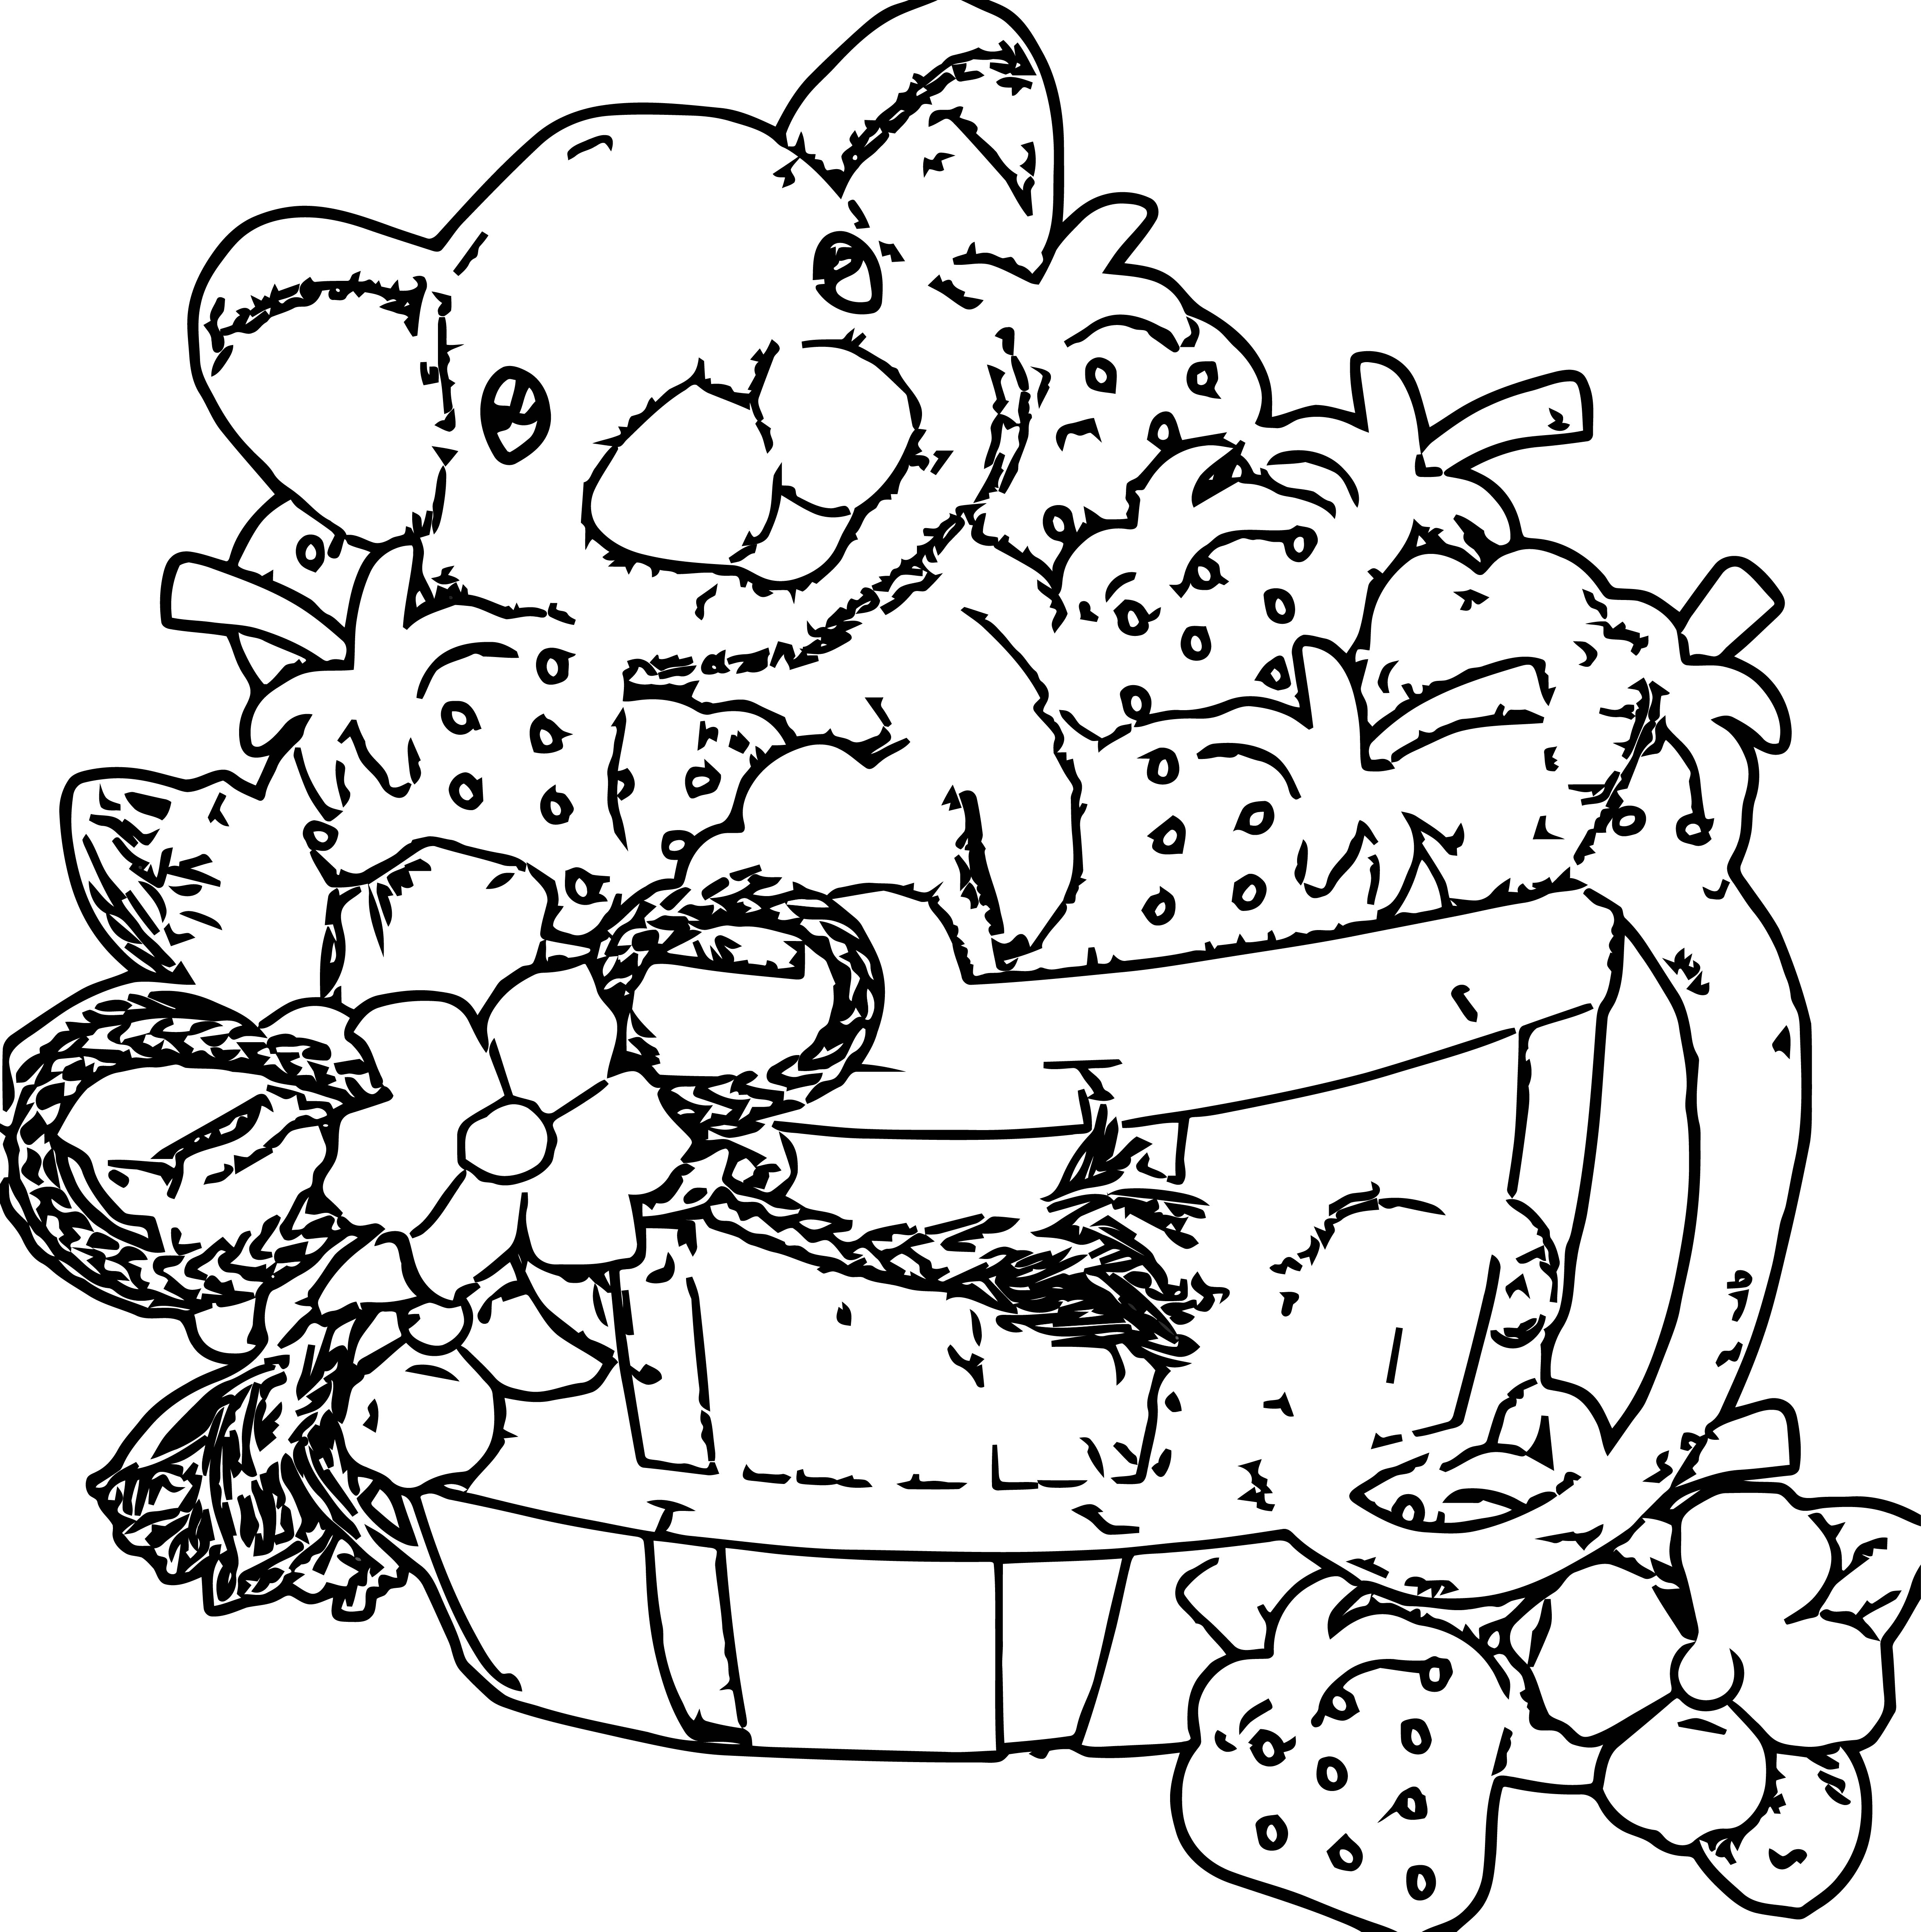 Mouse Jpeg Coloring Page 110